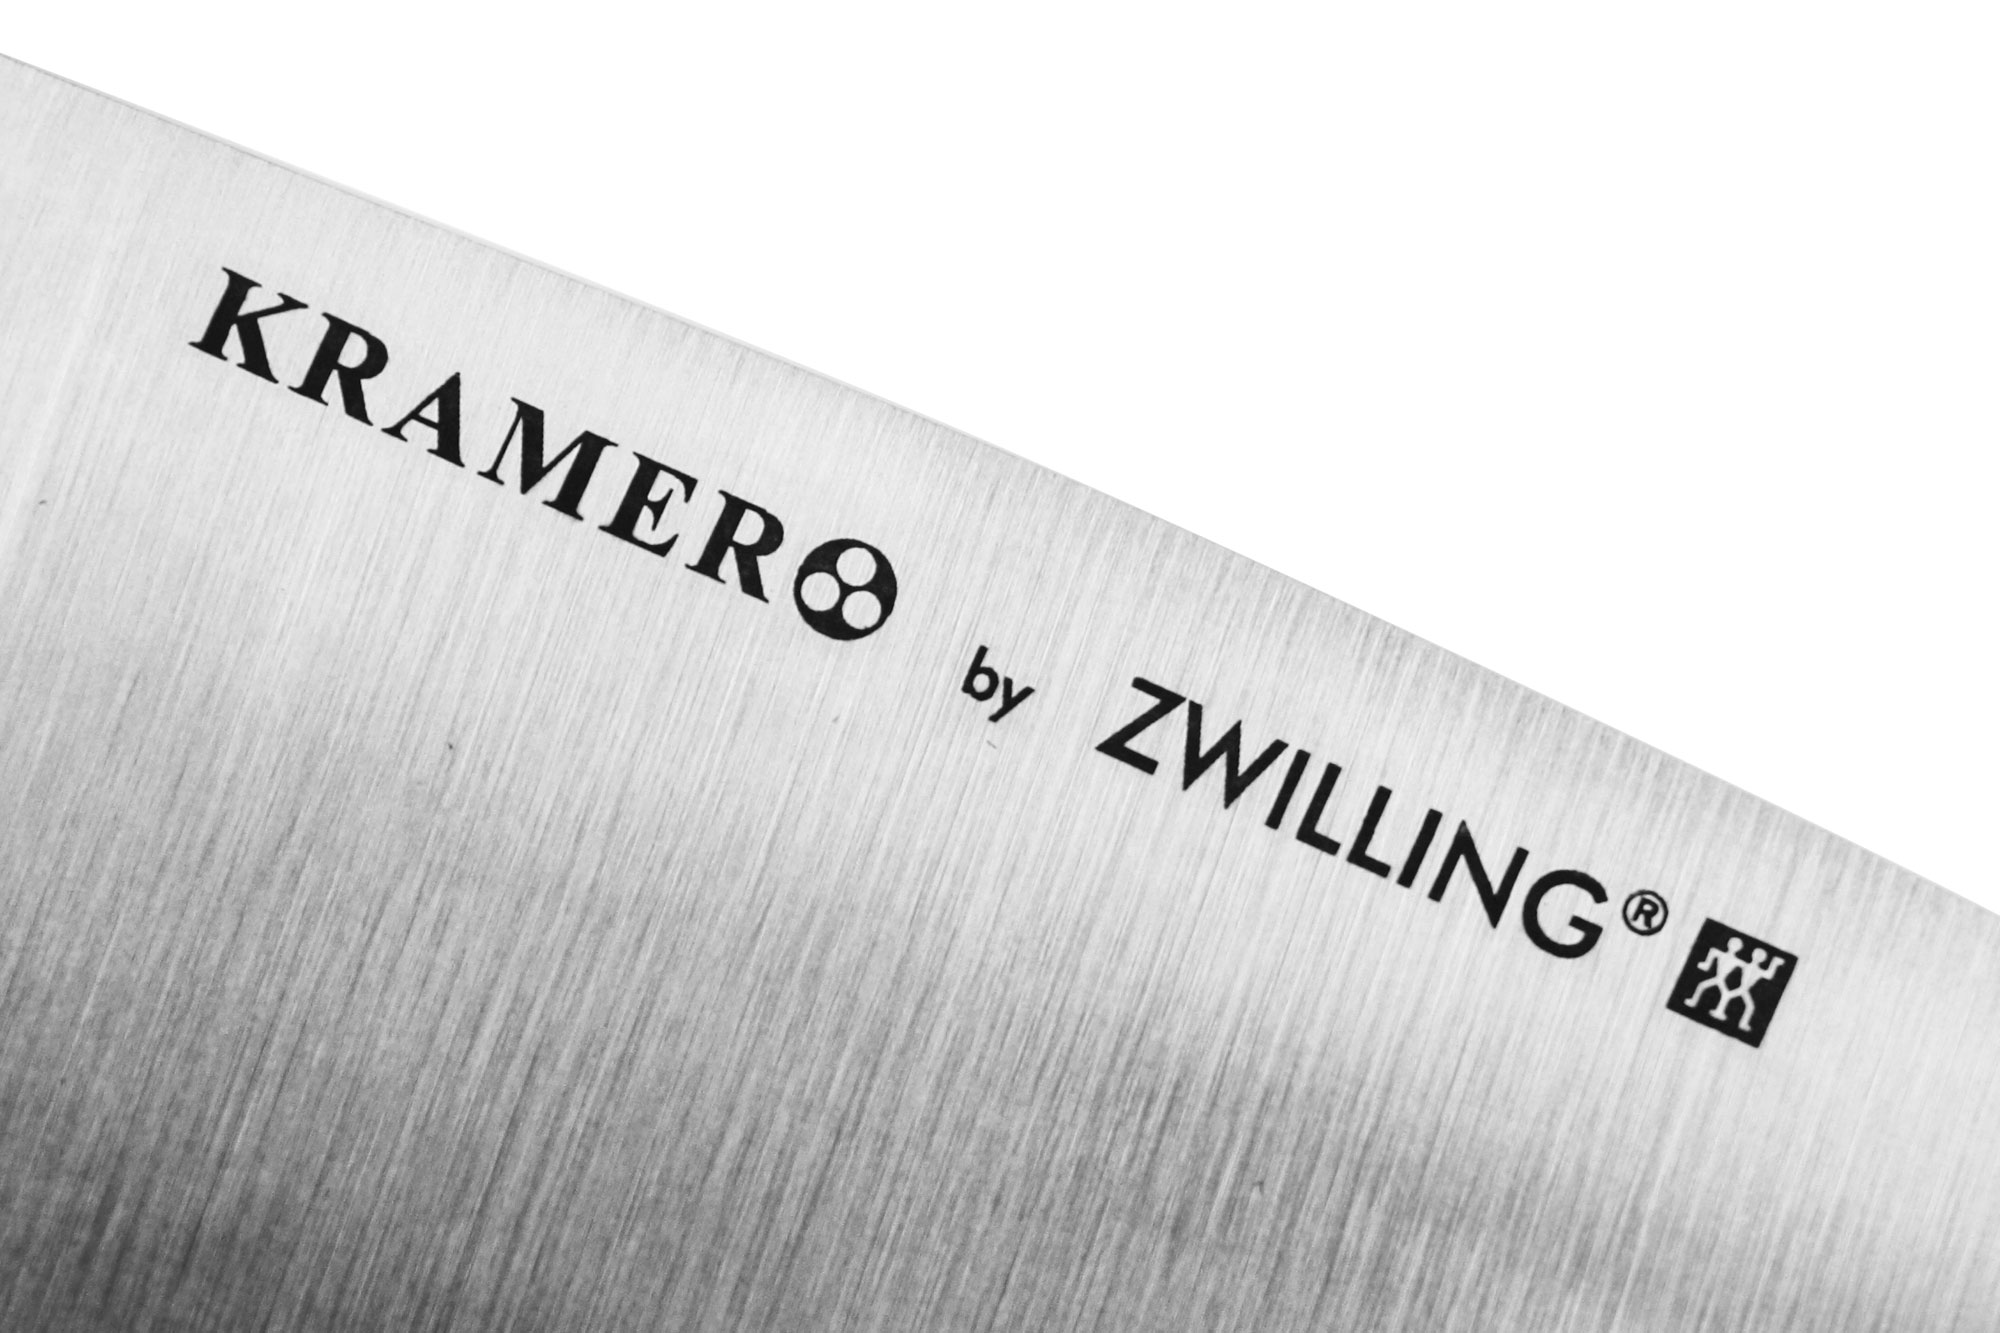 Bob Kramer Carbon Steel Chef S Knife 10 Inch By Zwilling